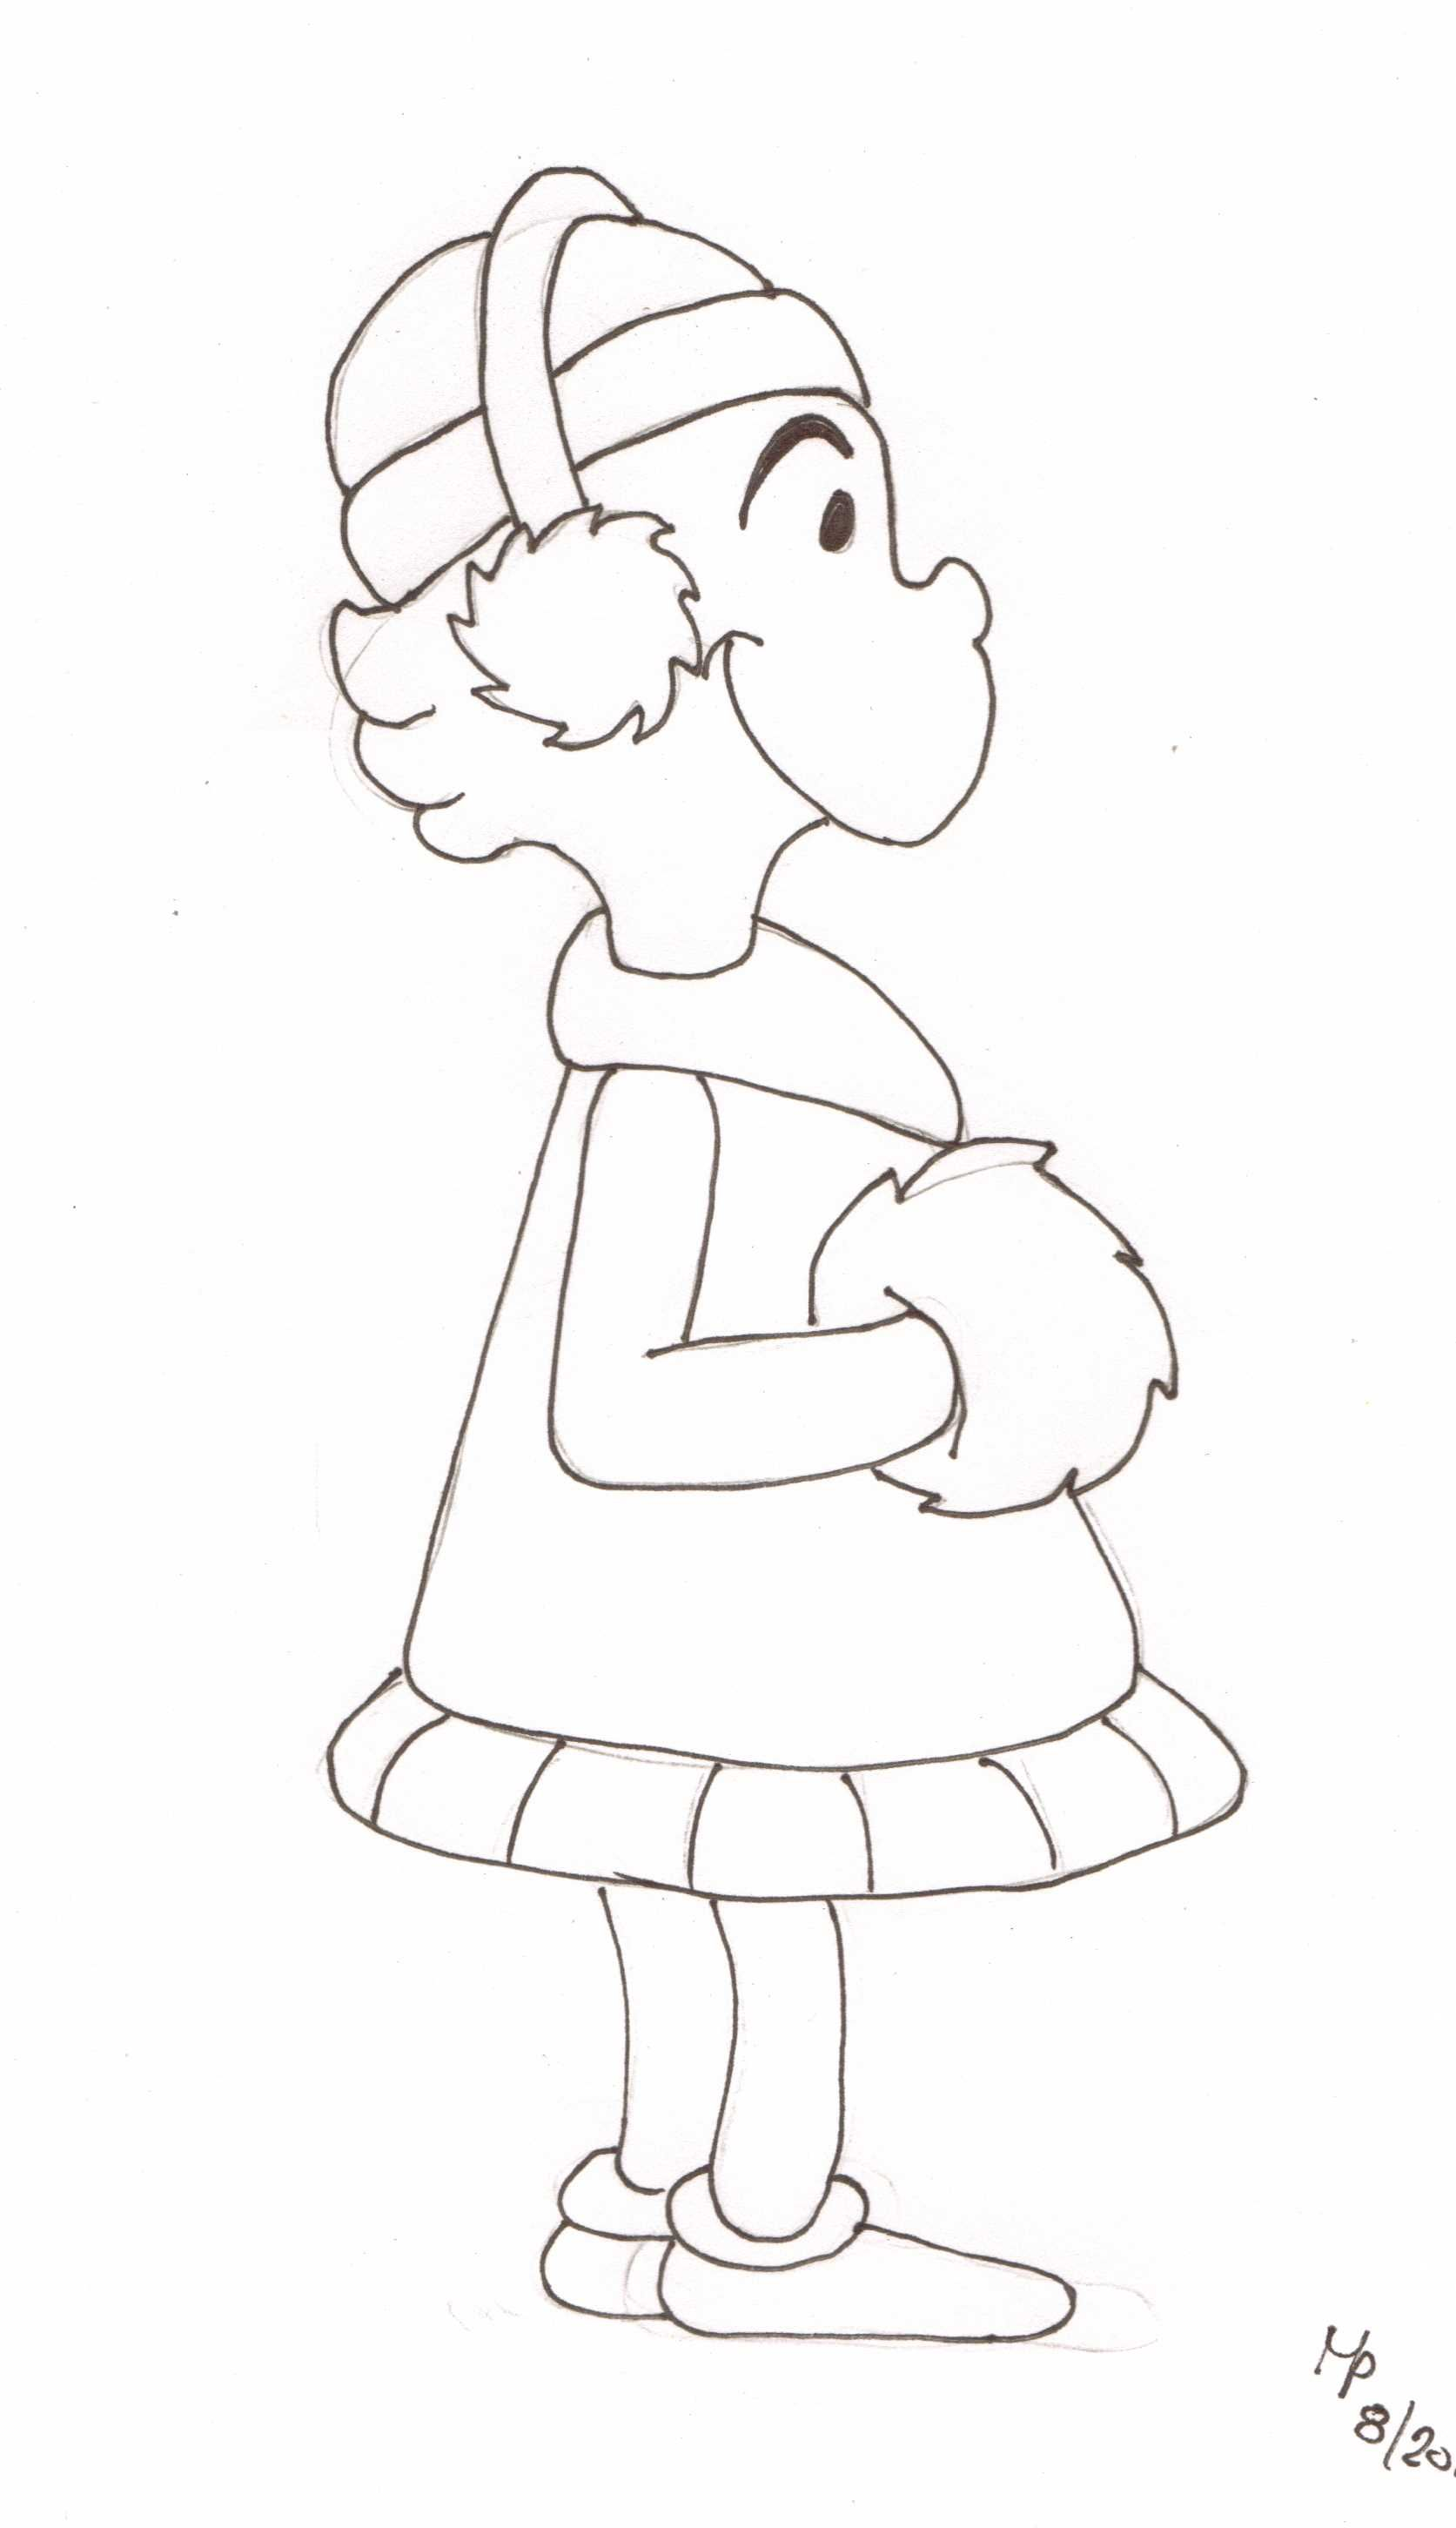 whoville coloring pages - photo#16